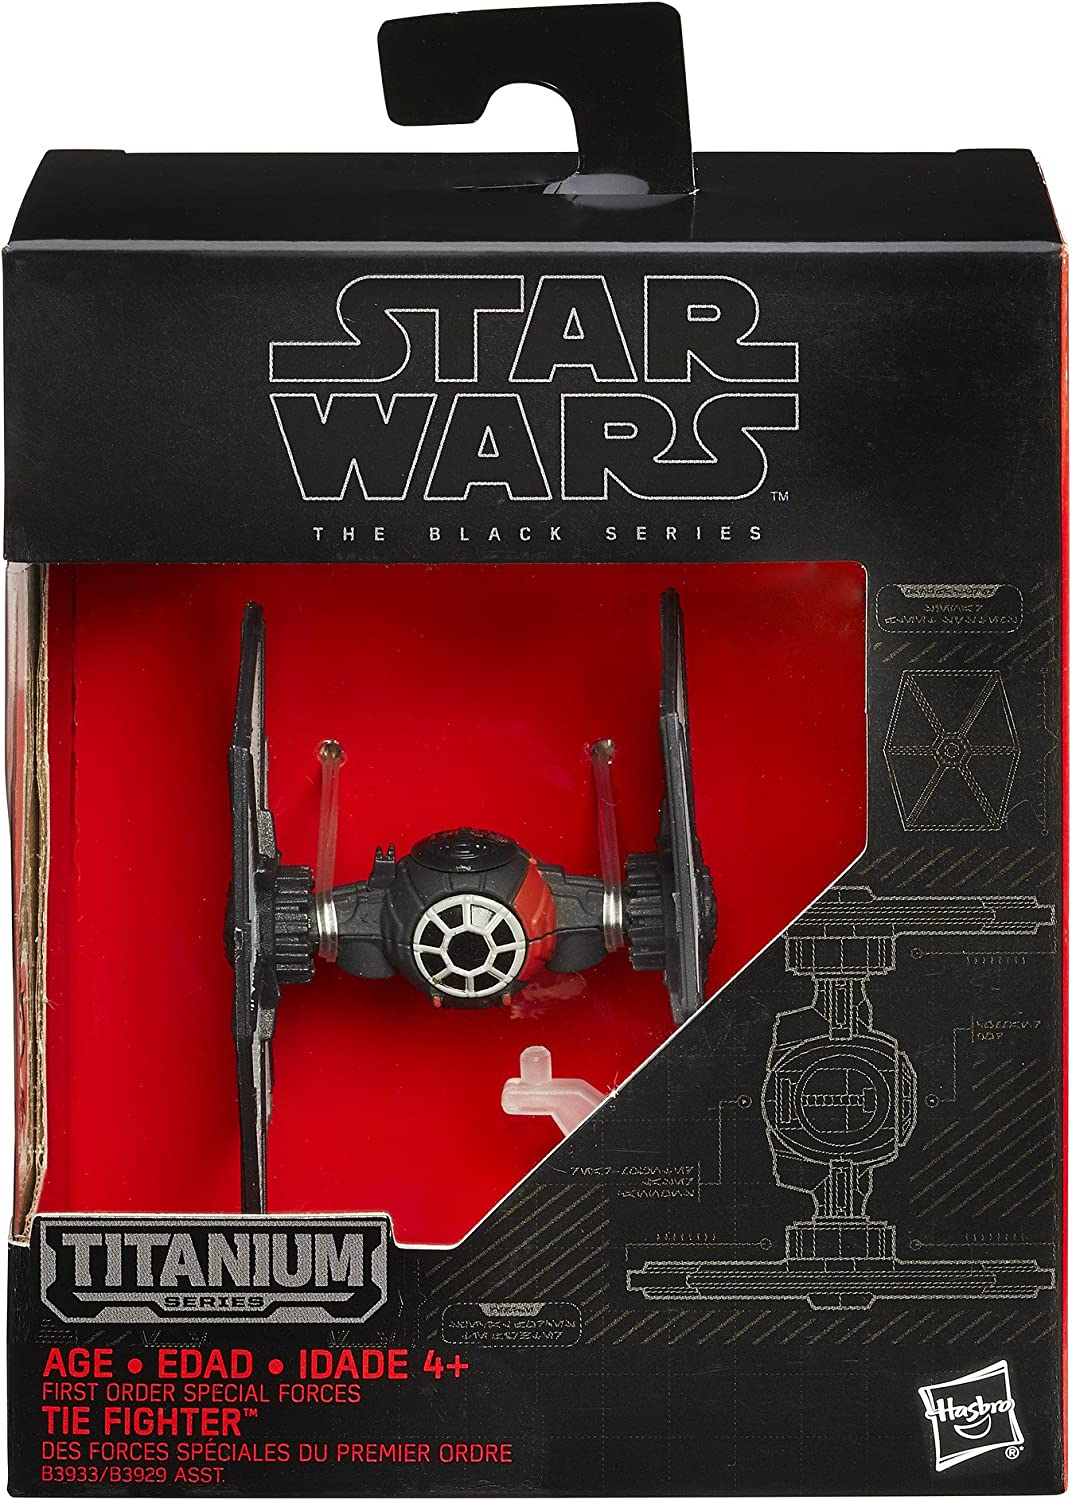 First Order Special Forces Tie Fighter 01 STAR WARS Black Series MIB NEW